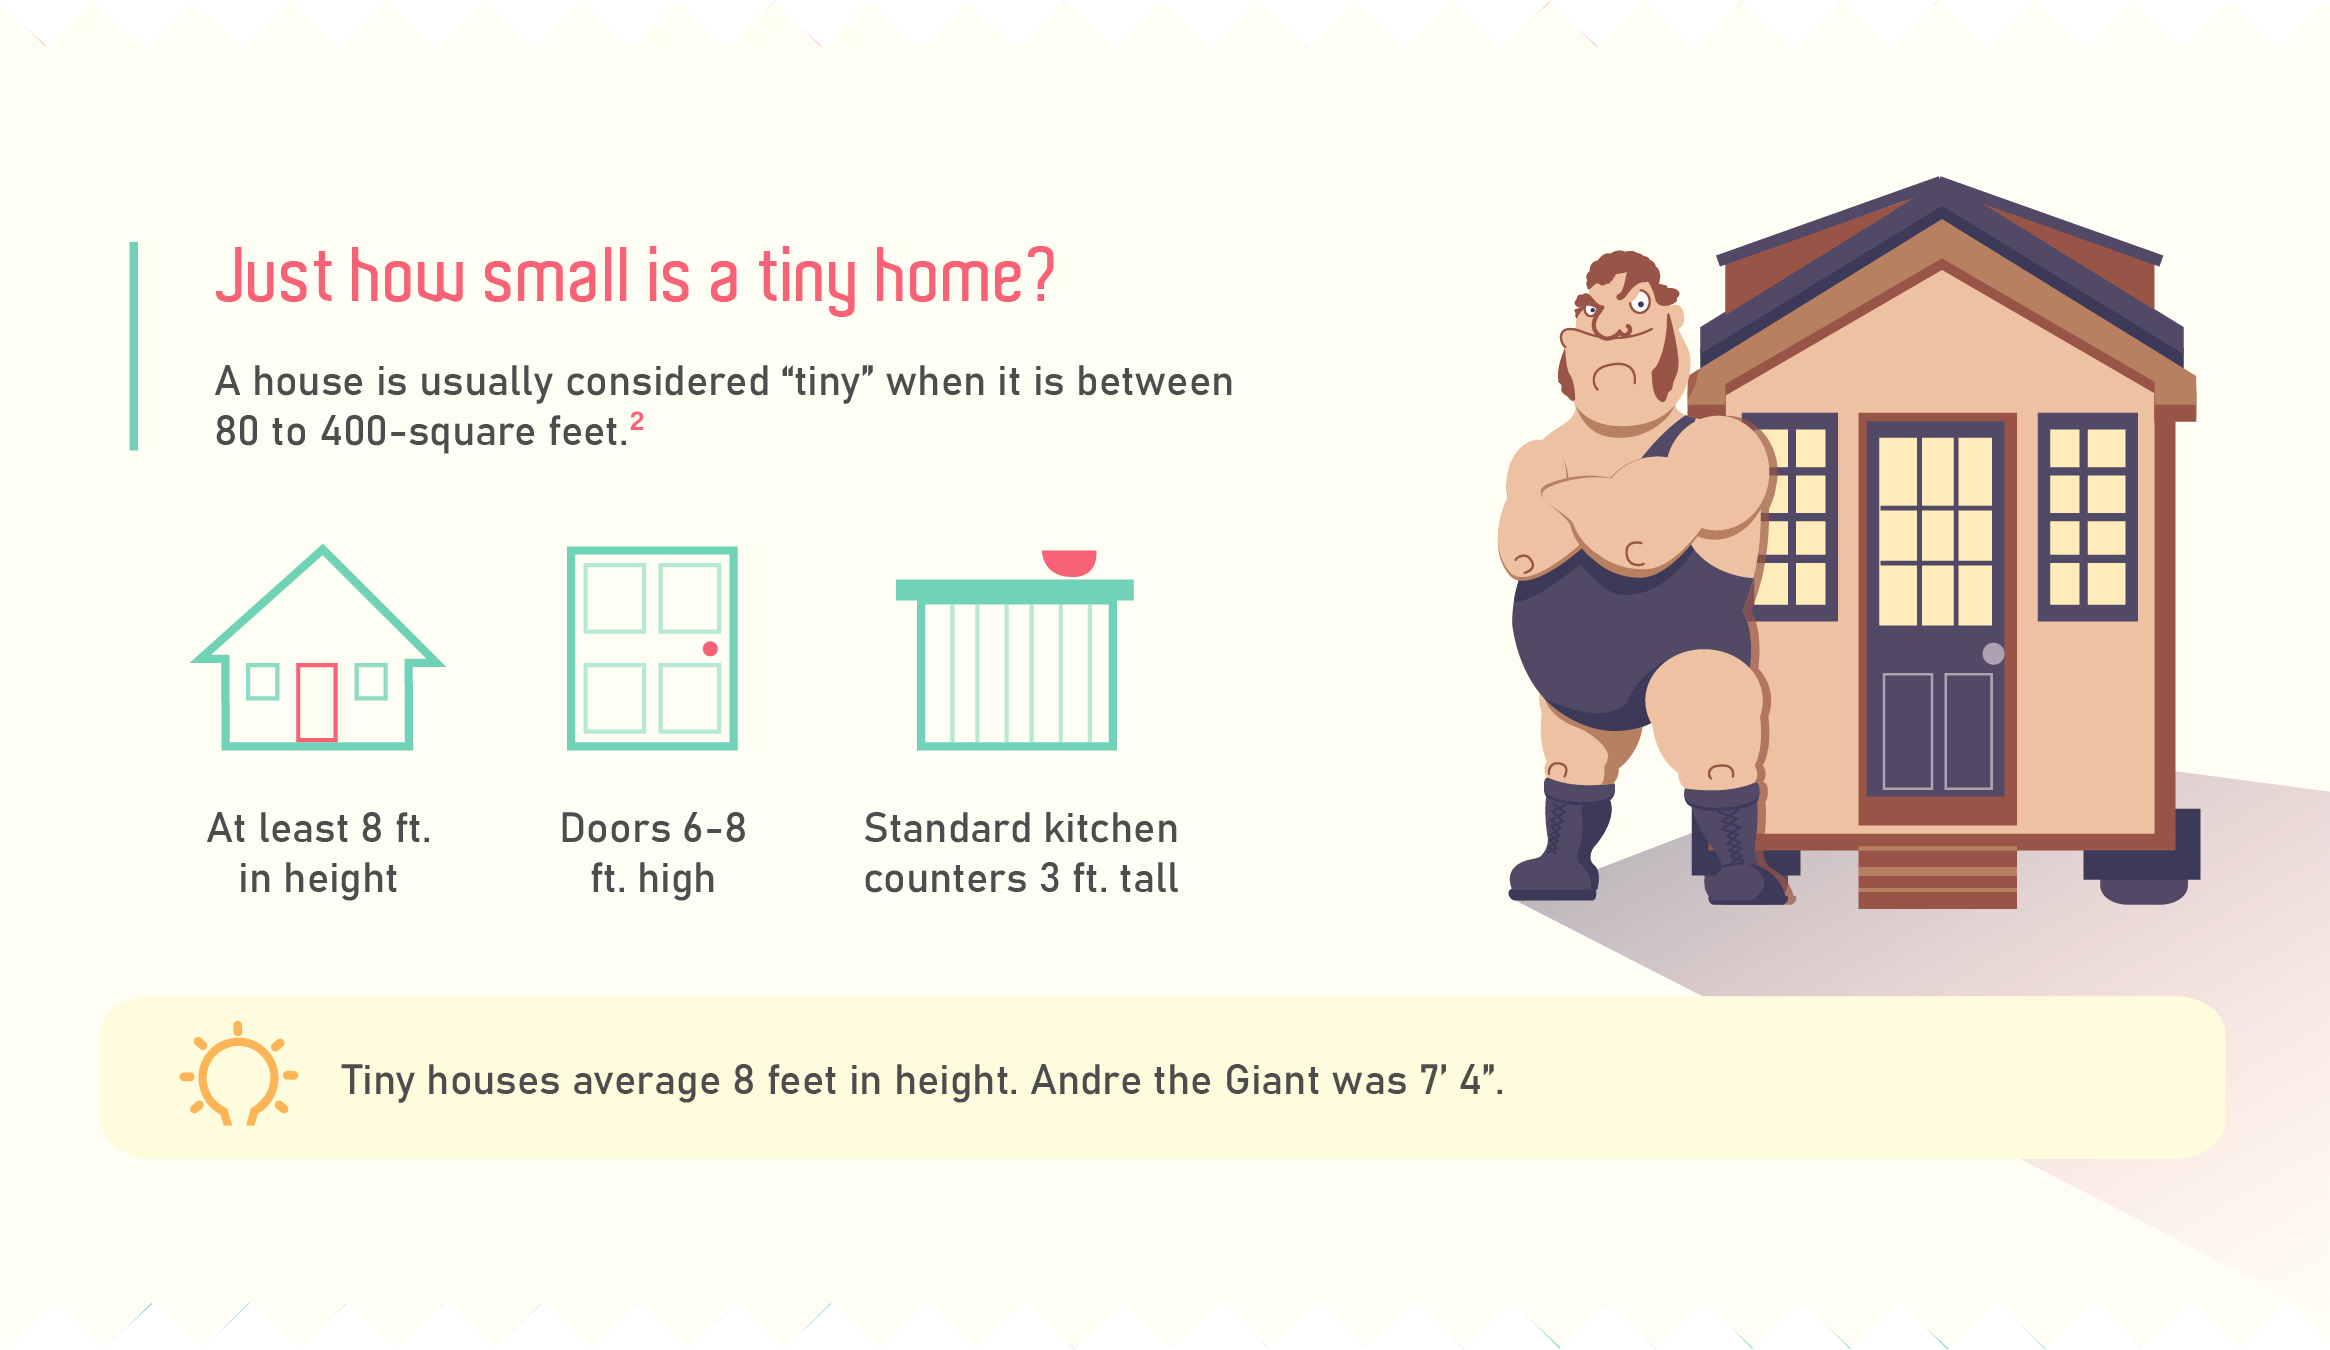 Just how small is a tiny home?